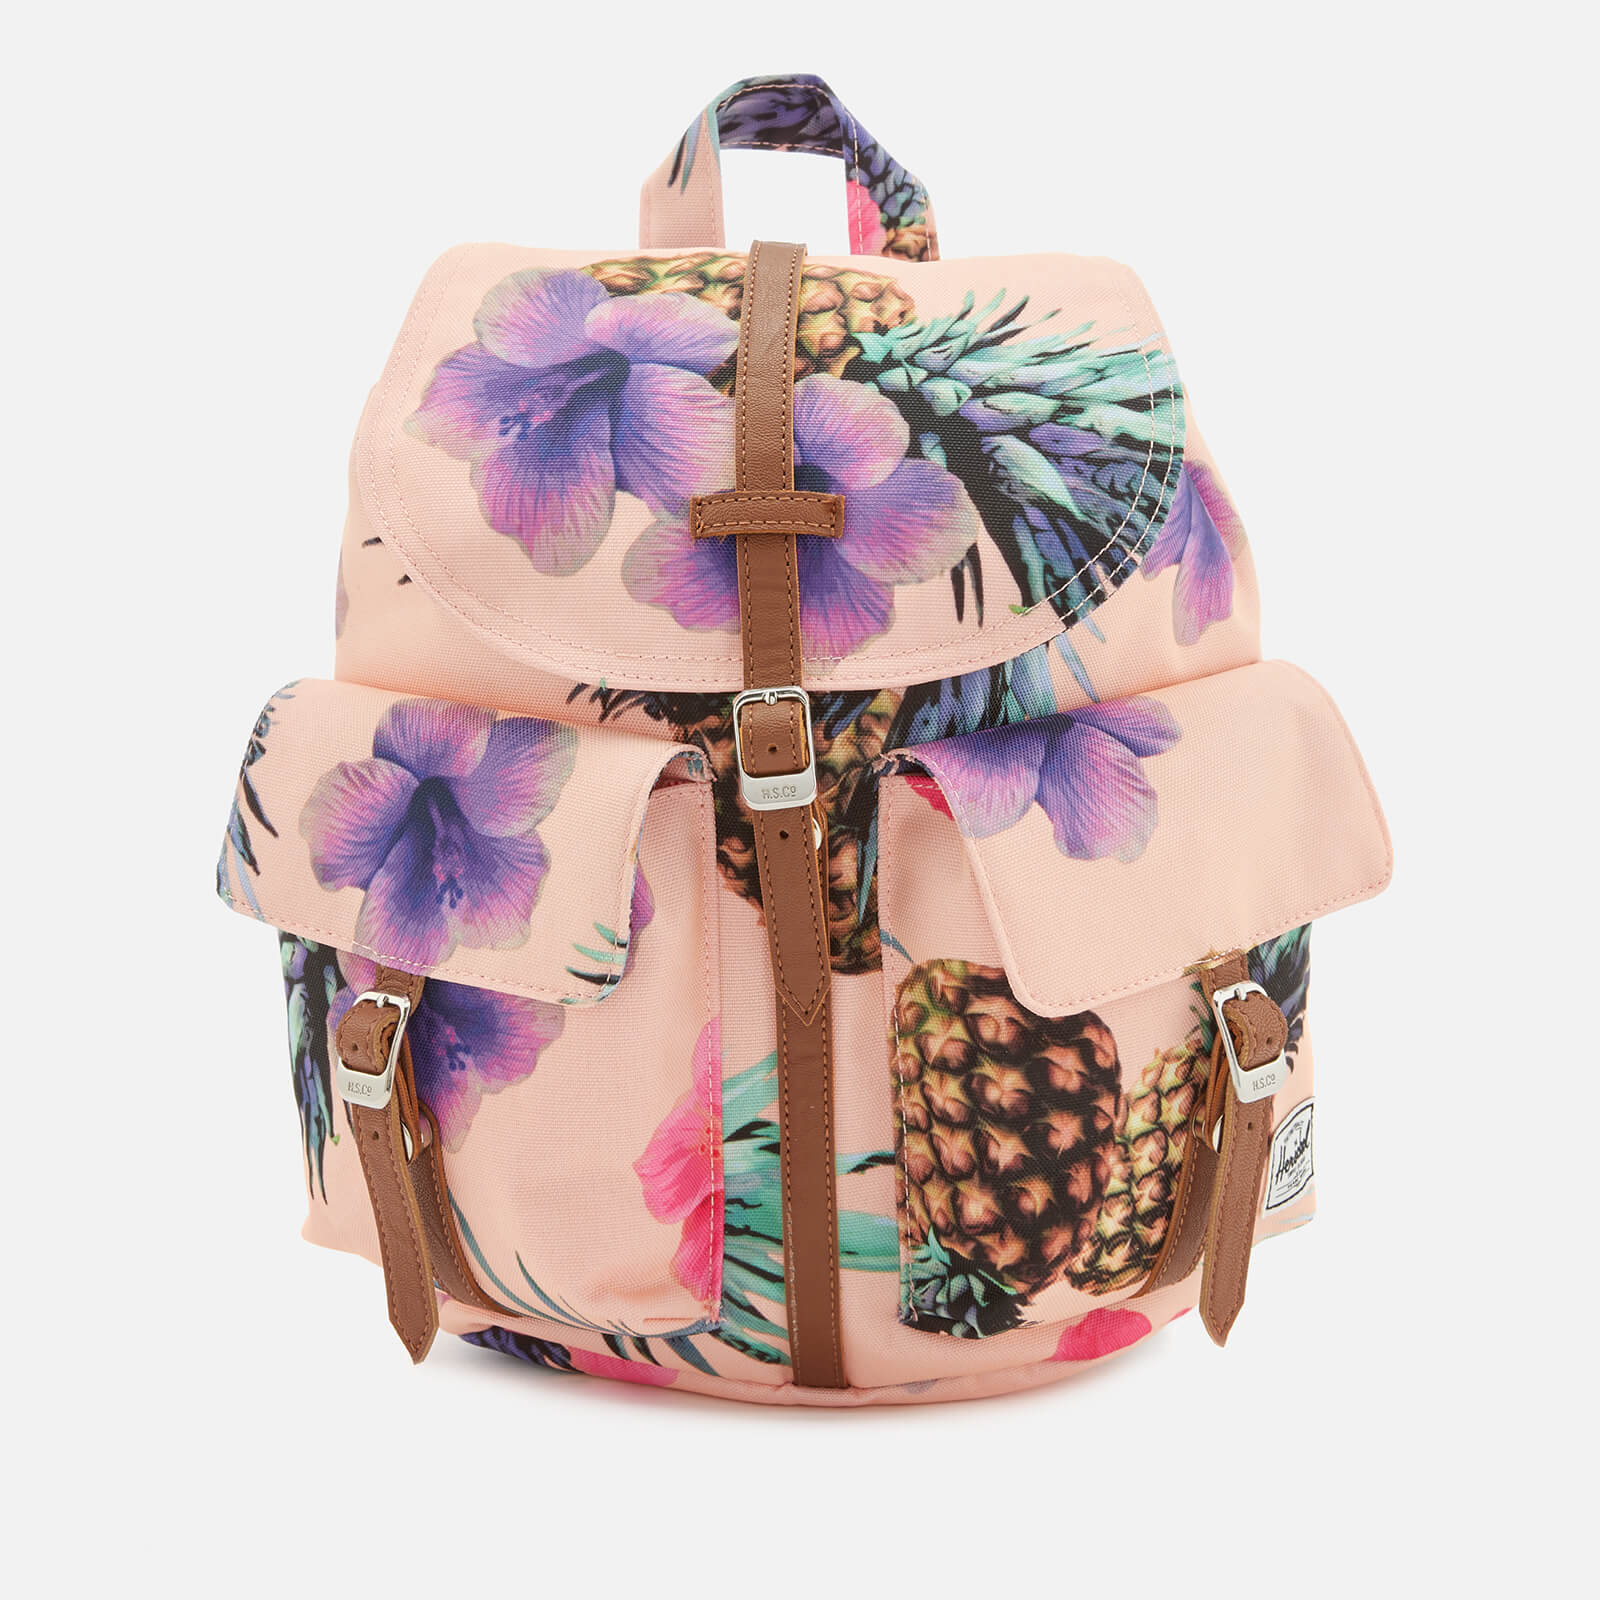 70d1f10b3b8 Herschel Supply Co. Men s Dawson Extra Small Backpack - Peach Pineapple Tan  - Free UK Delivery over £50